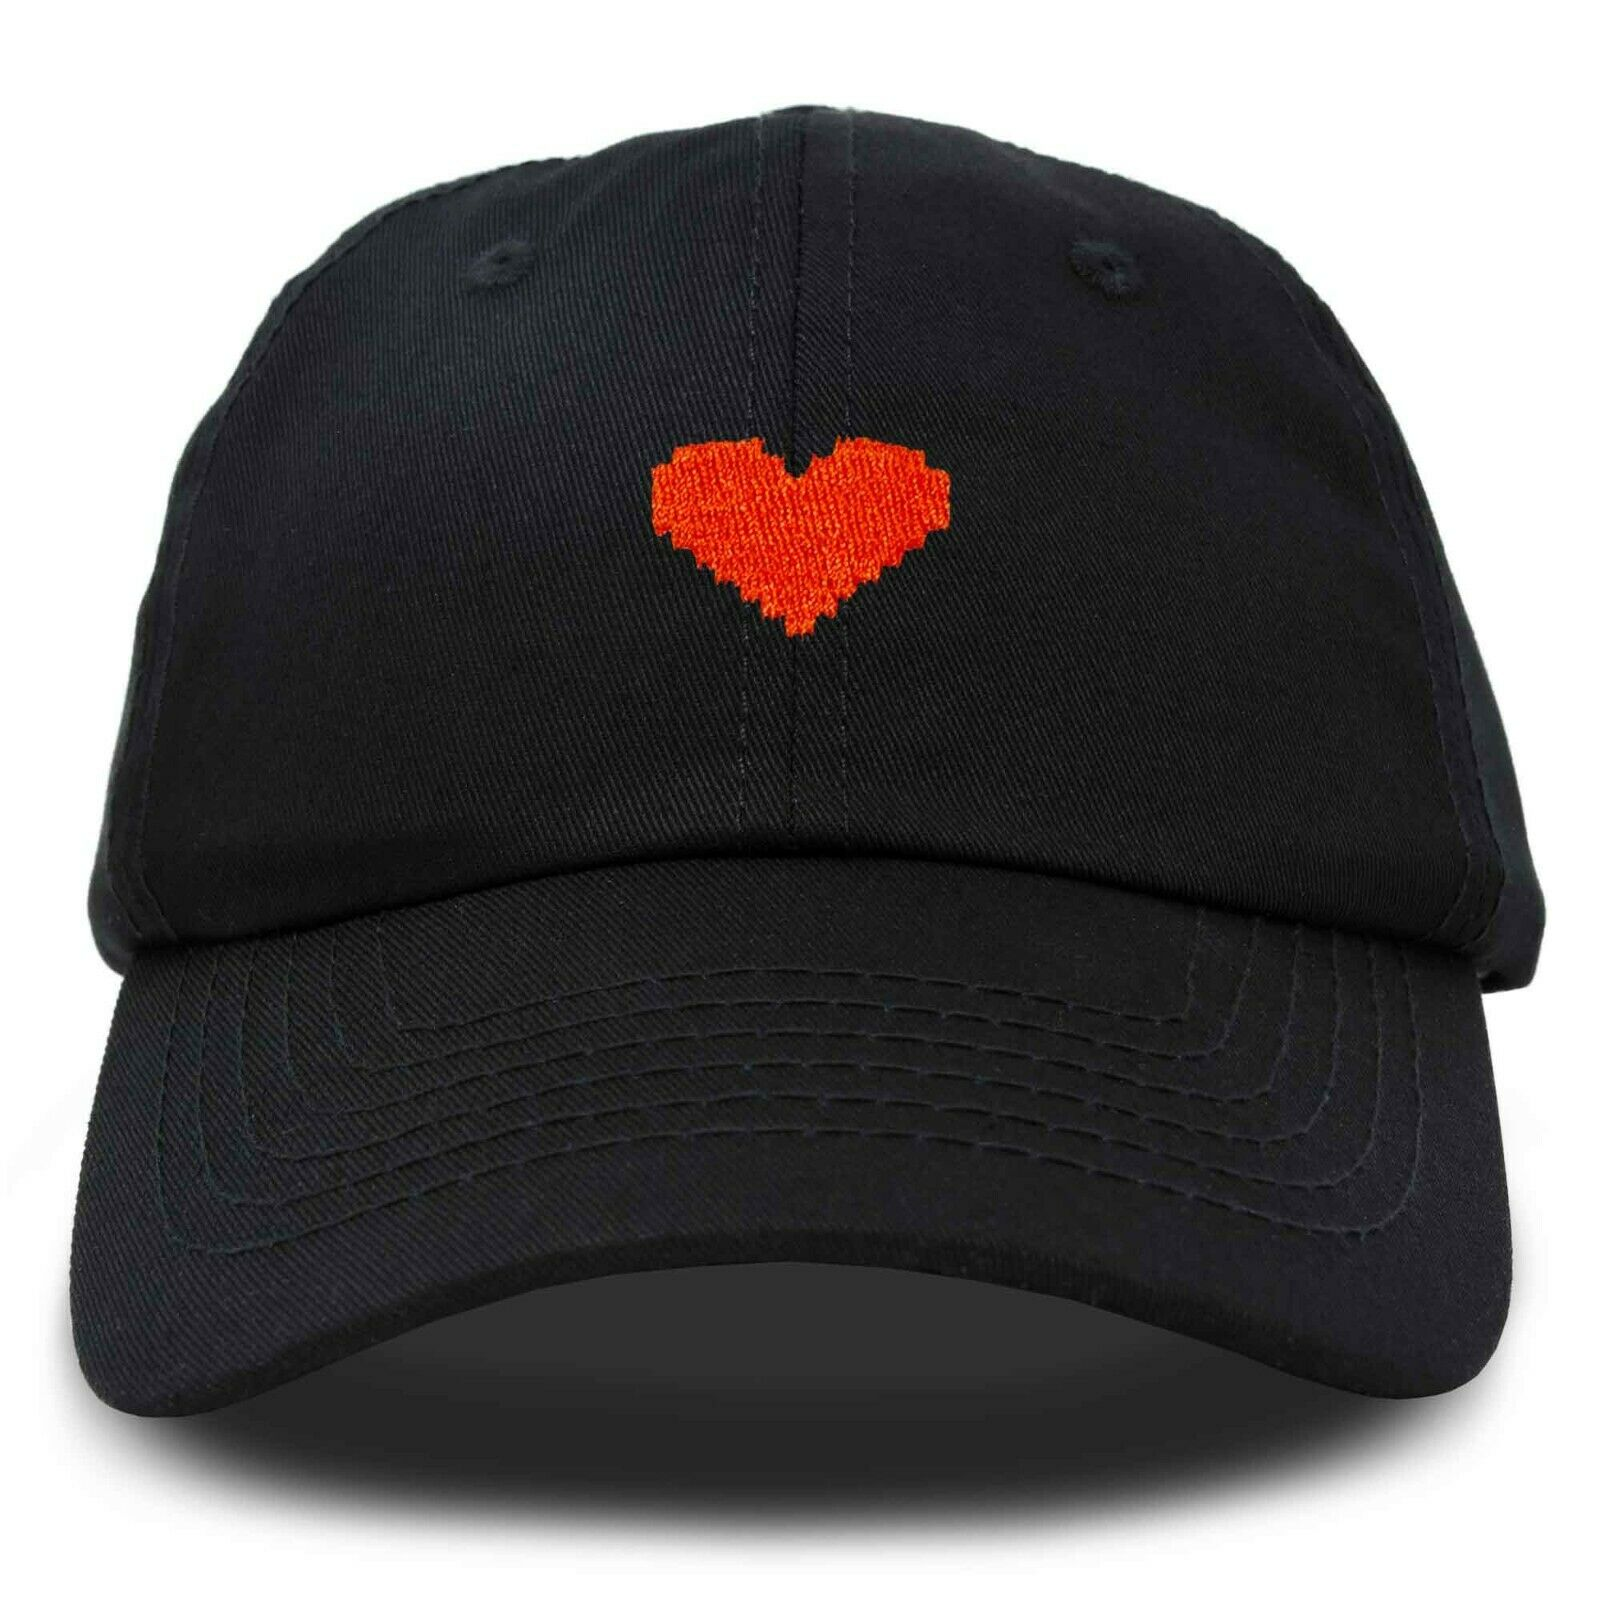 DALIX Pixel Heart Hat Womens Dad Hats Cotton Caps Embroidered Valentines Clothing, Shoes & Accessories